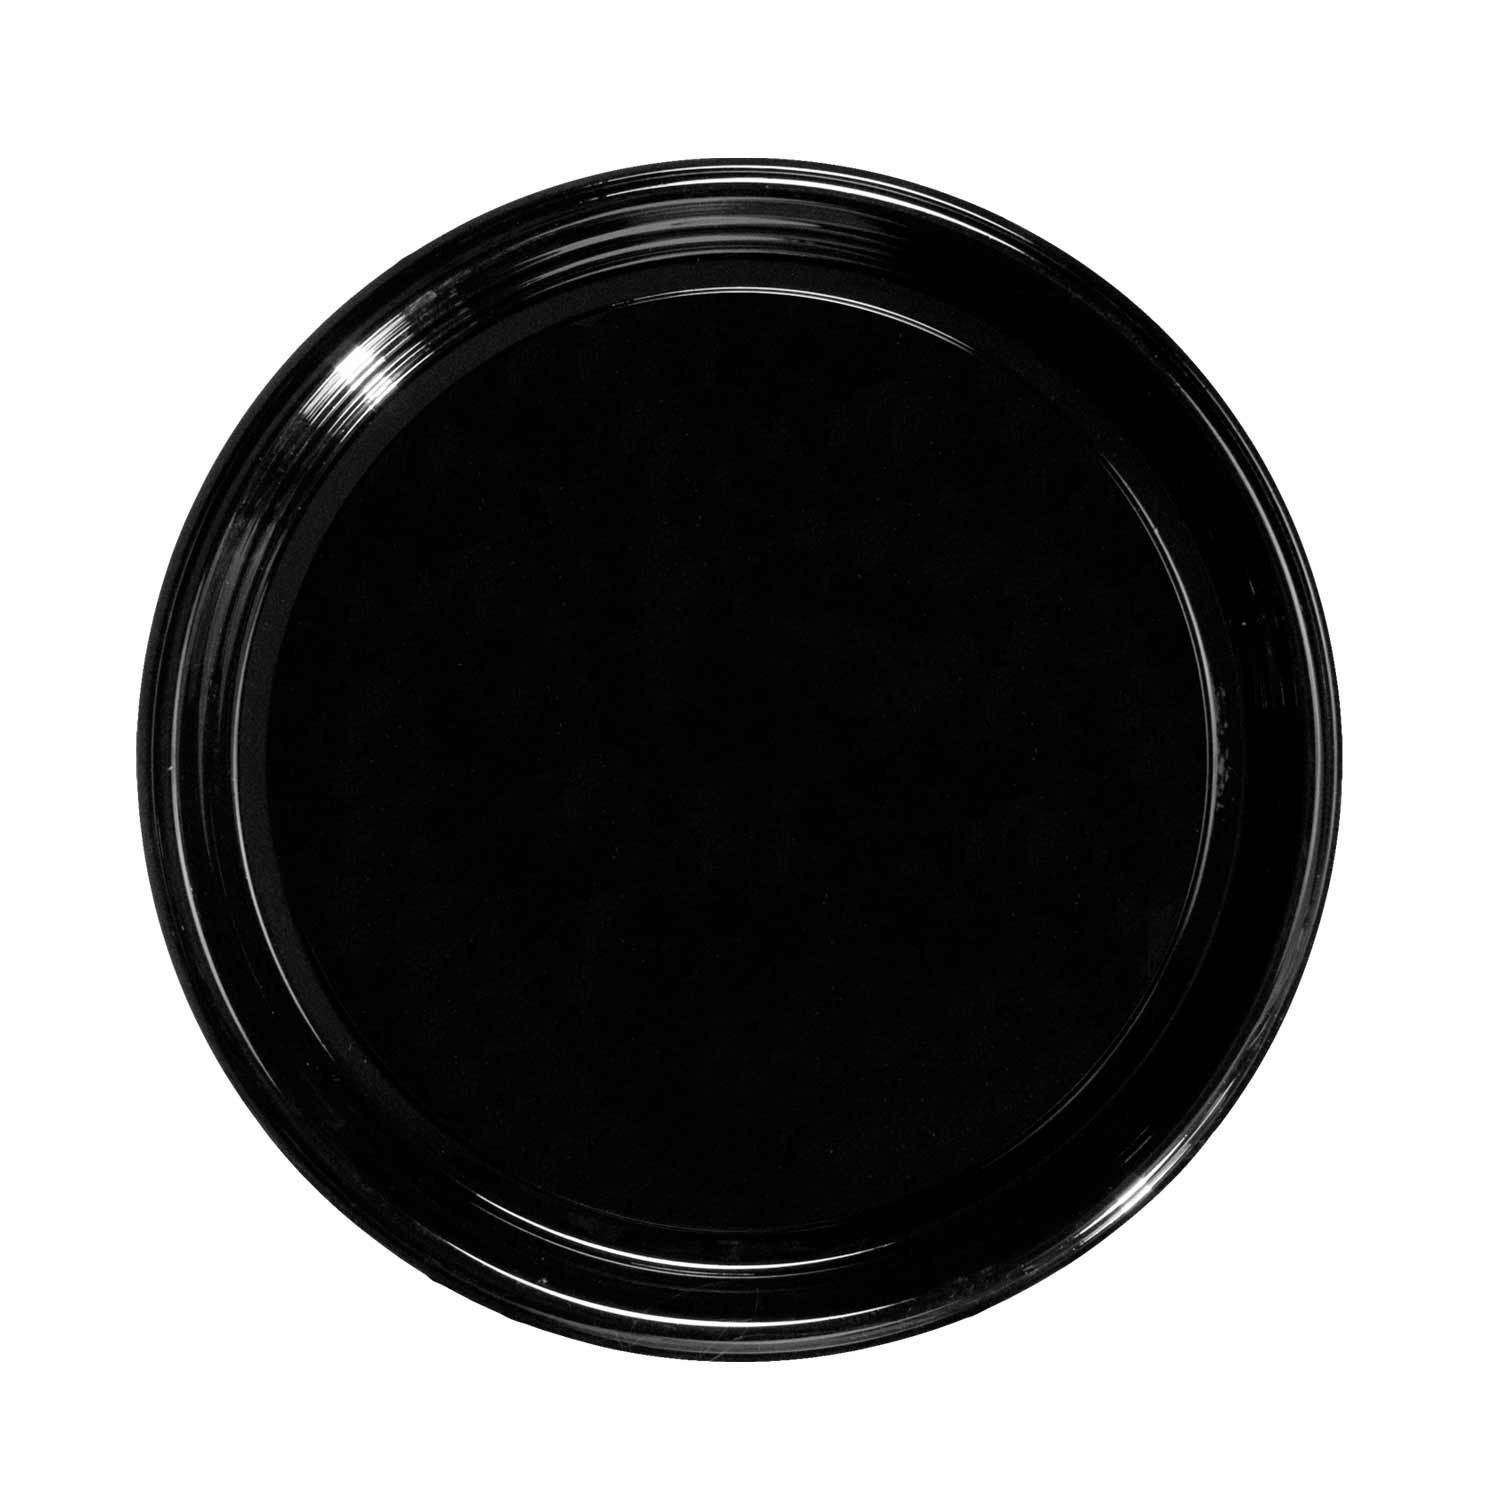 Party Essentials Soft Plastic 12-Inch Round Flat Catering Trays, Black, 3-Pack by Party Essentials (Image #2)